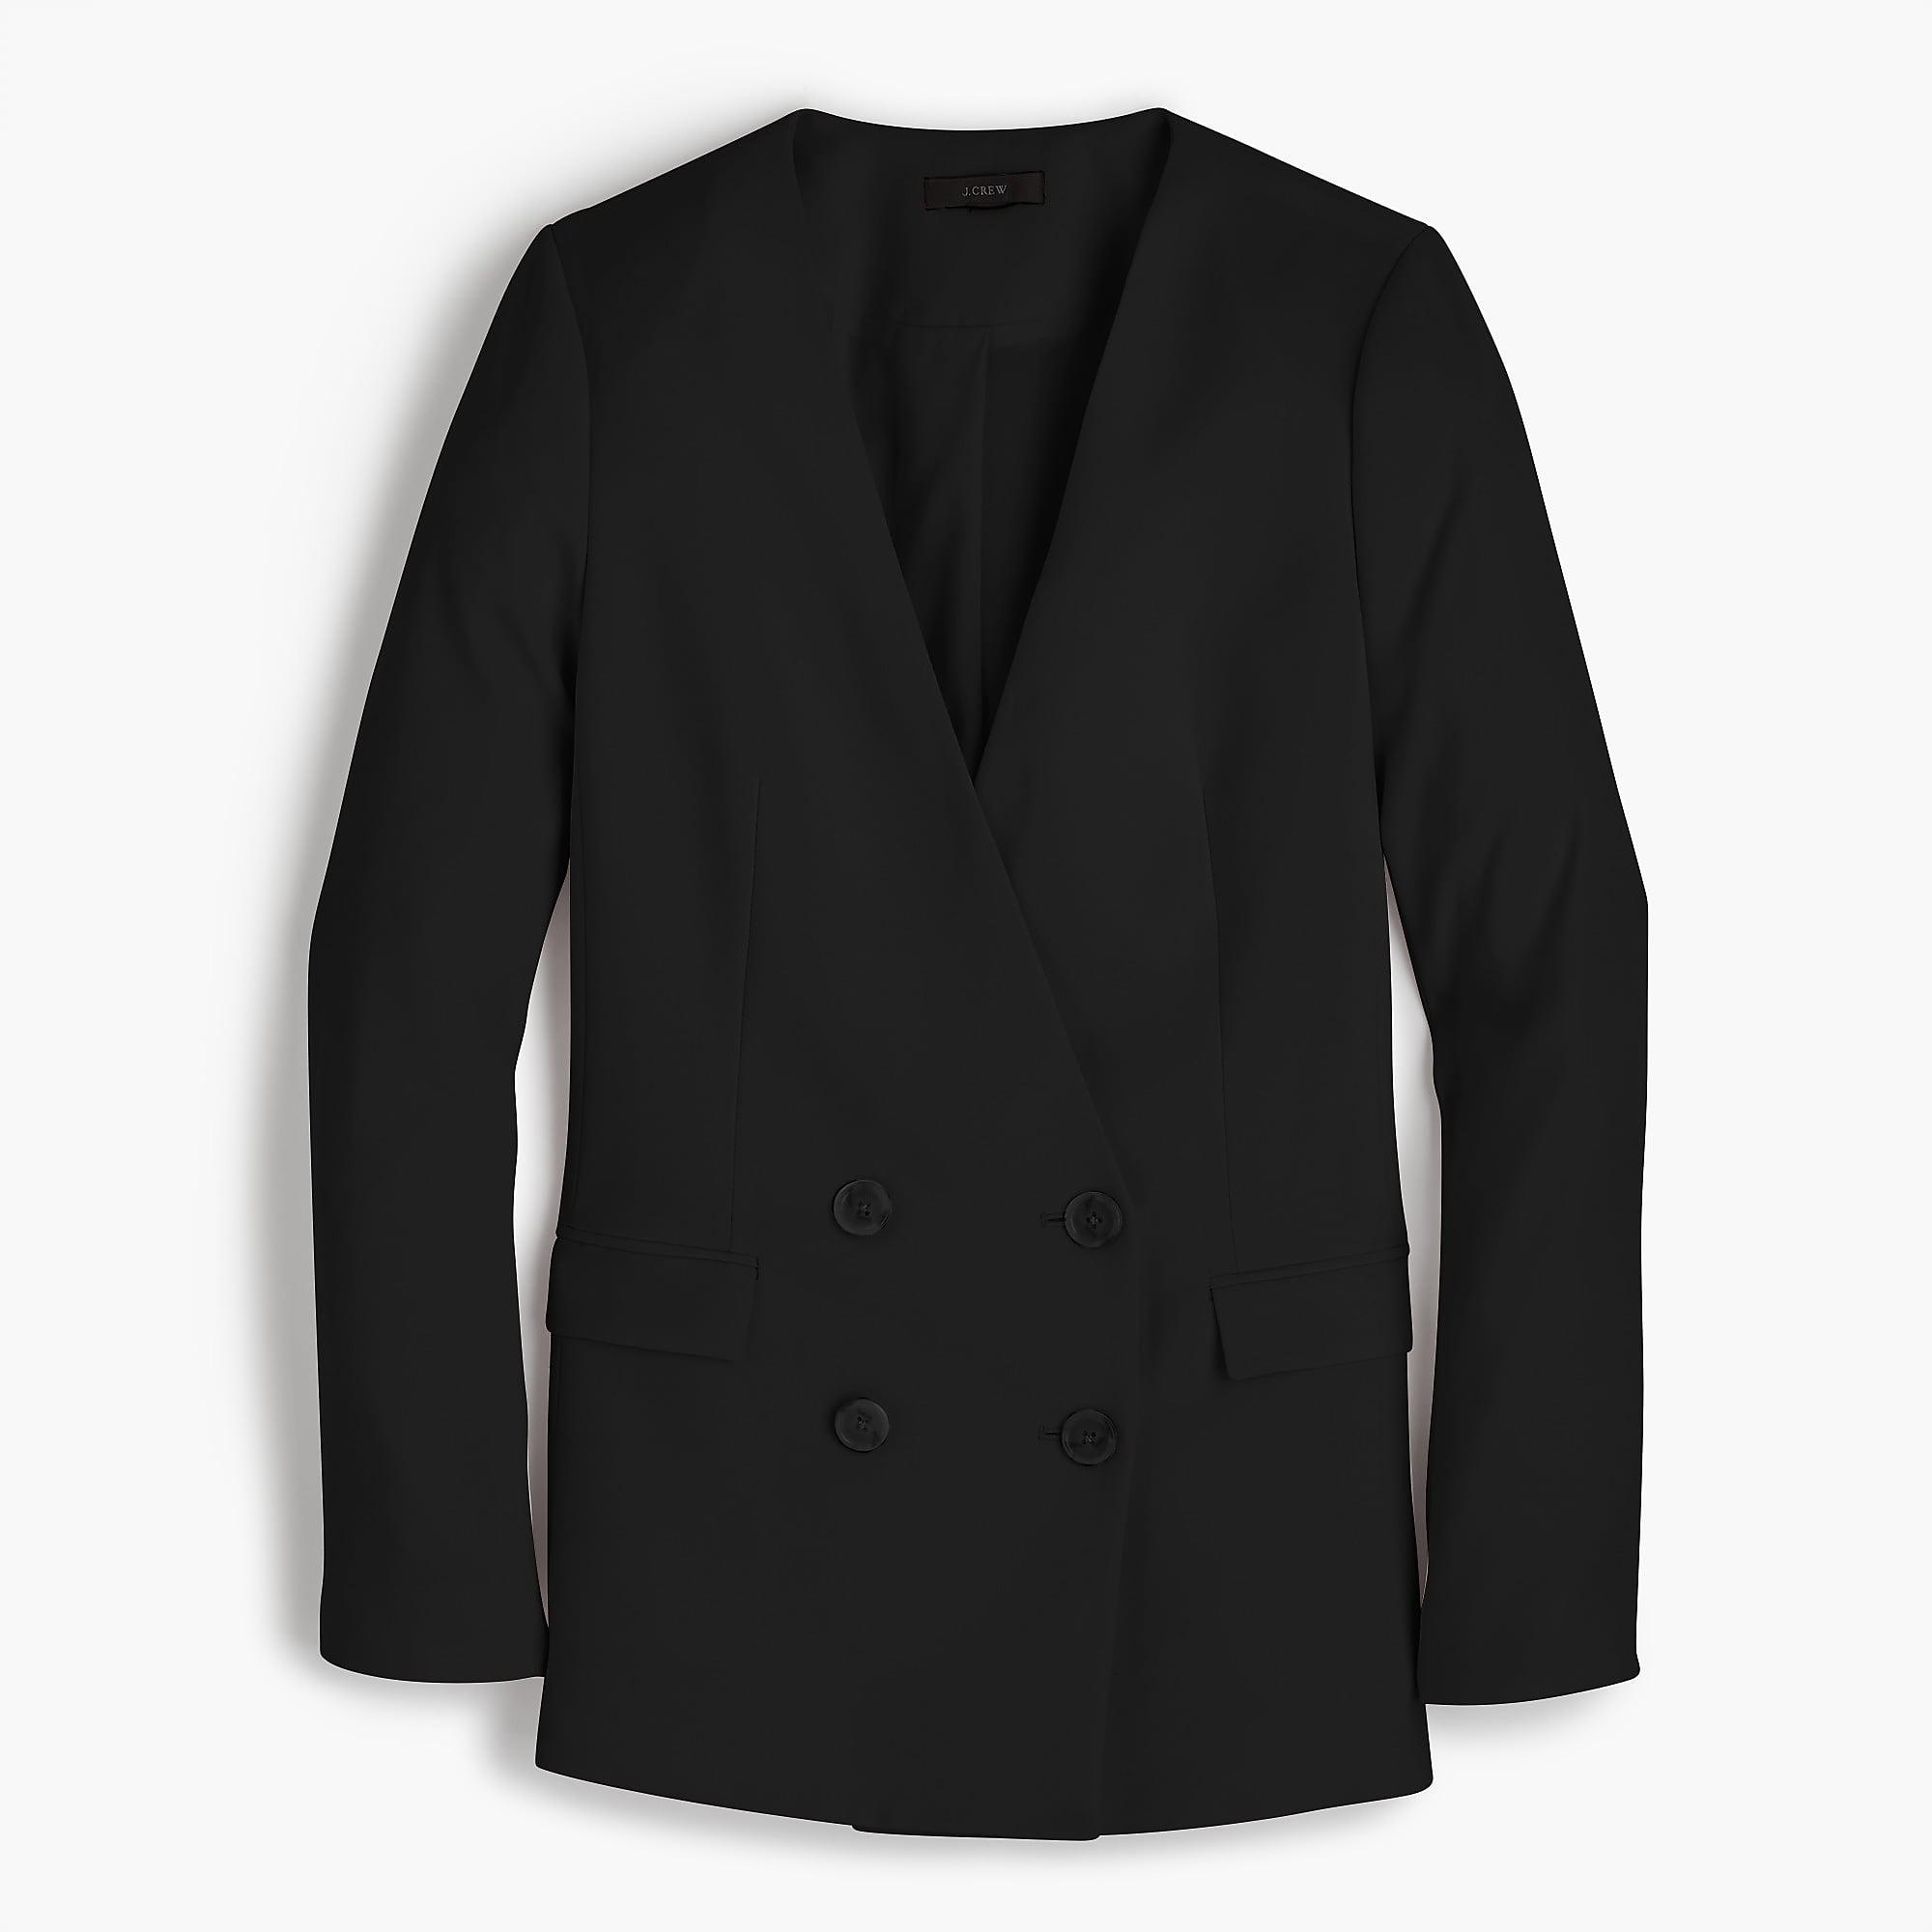 J.Crew French Girl Blazer